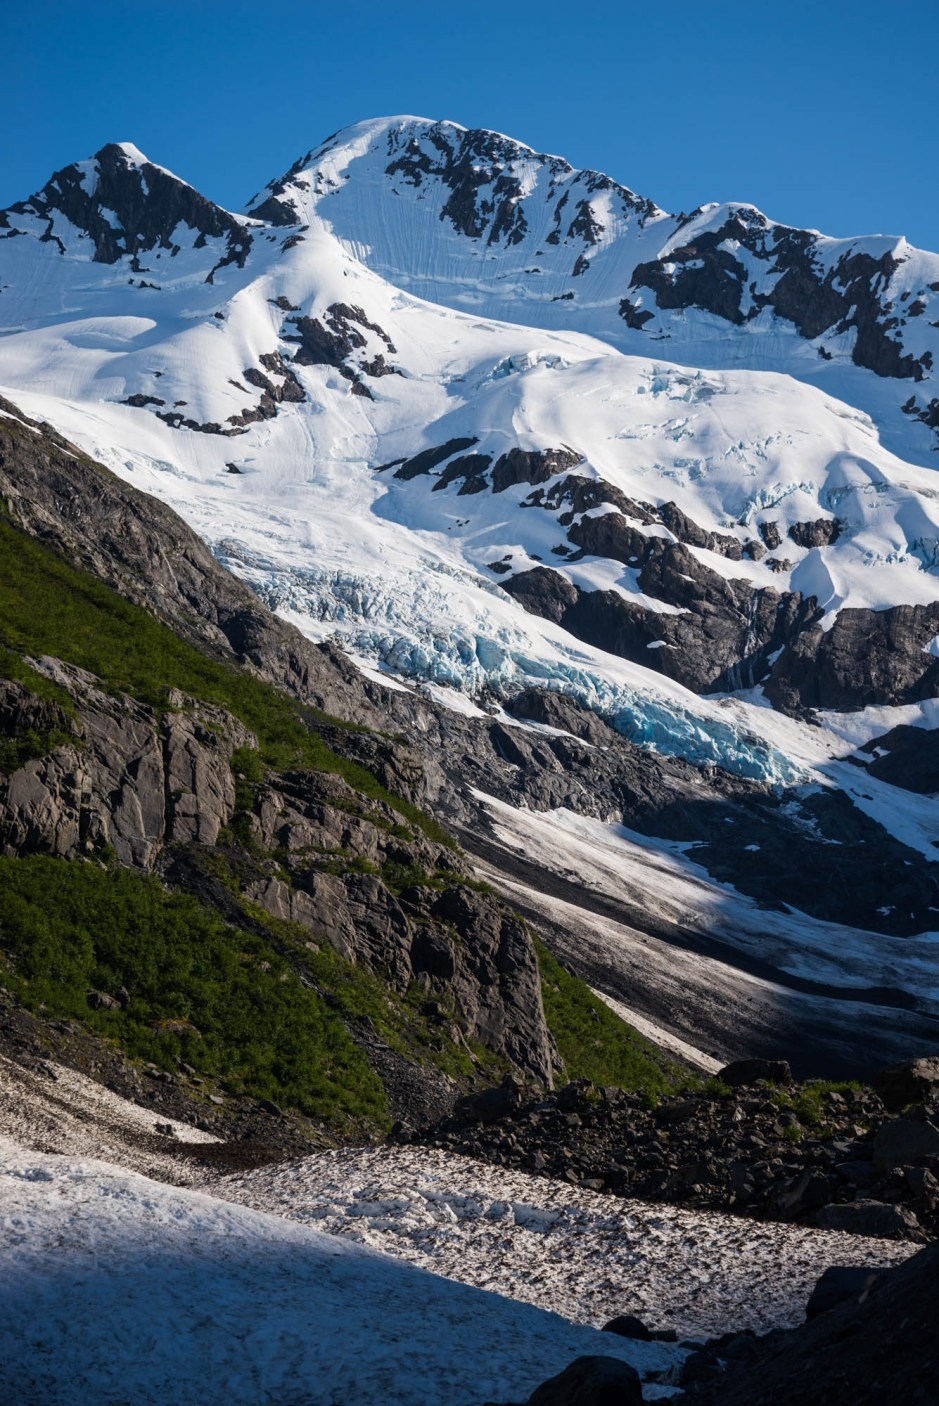 The blue ice of Alaska's Byron glacier cascades down a mountain top on a summer day. The aftermath of an avalanche is seen in the foreground.